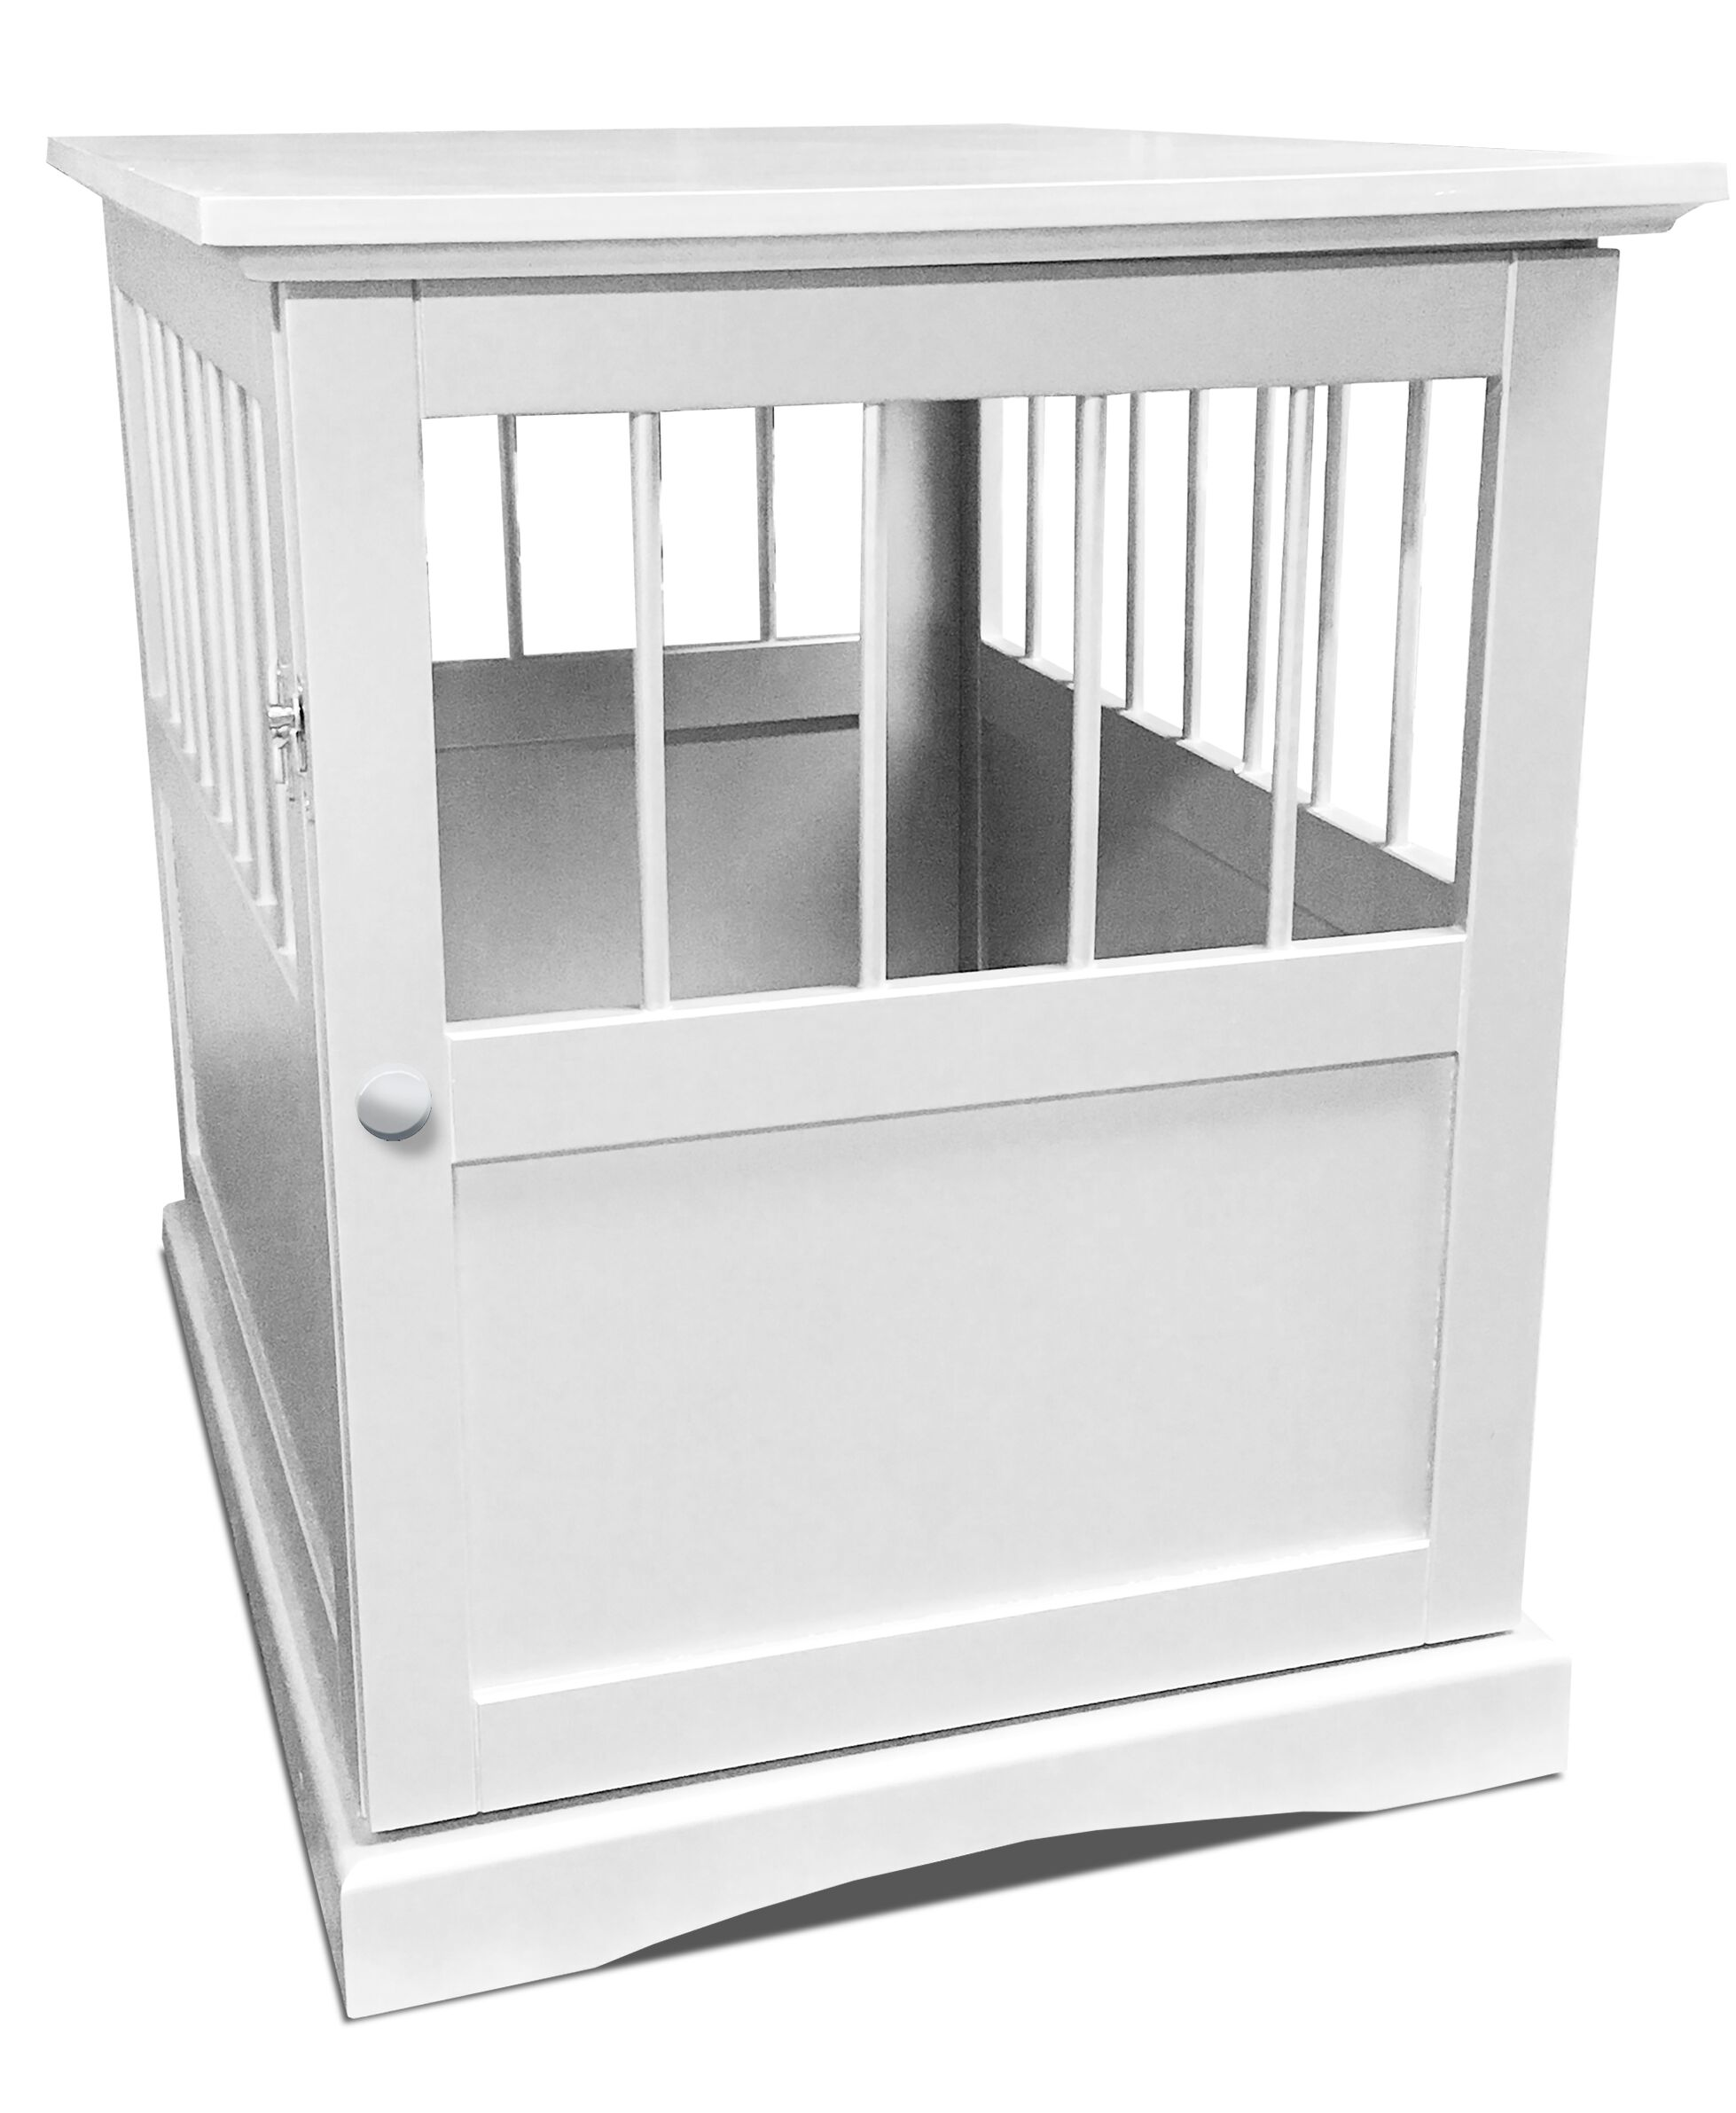 Caddy Pet Crate Size: Small (24.5